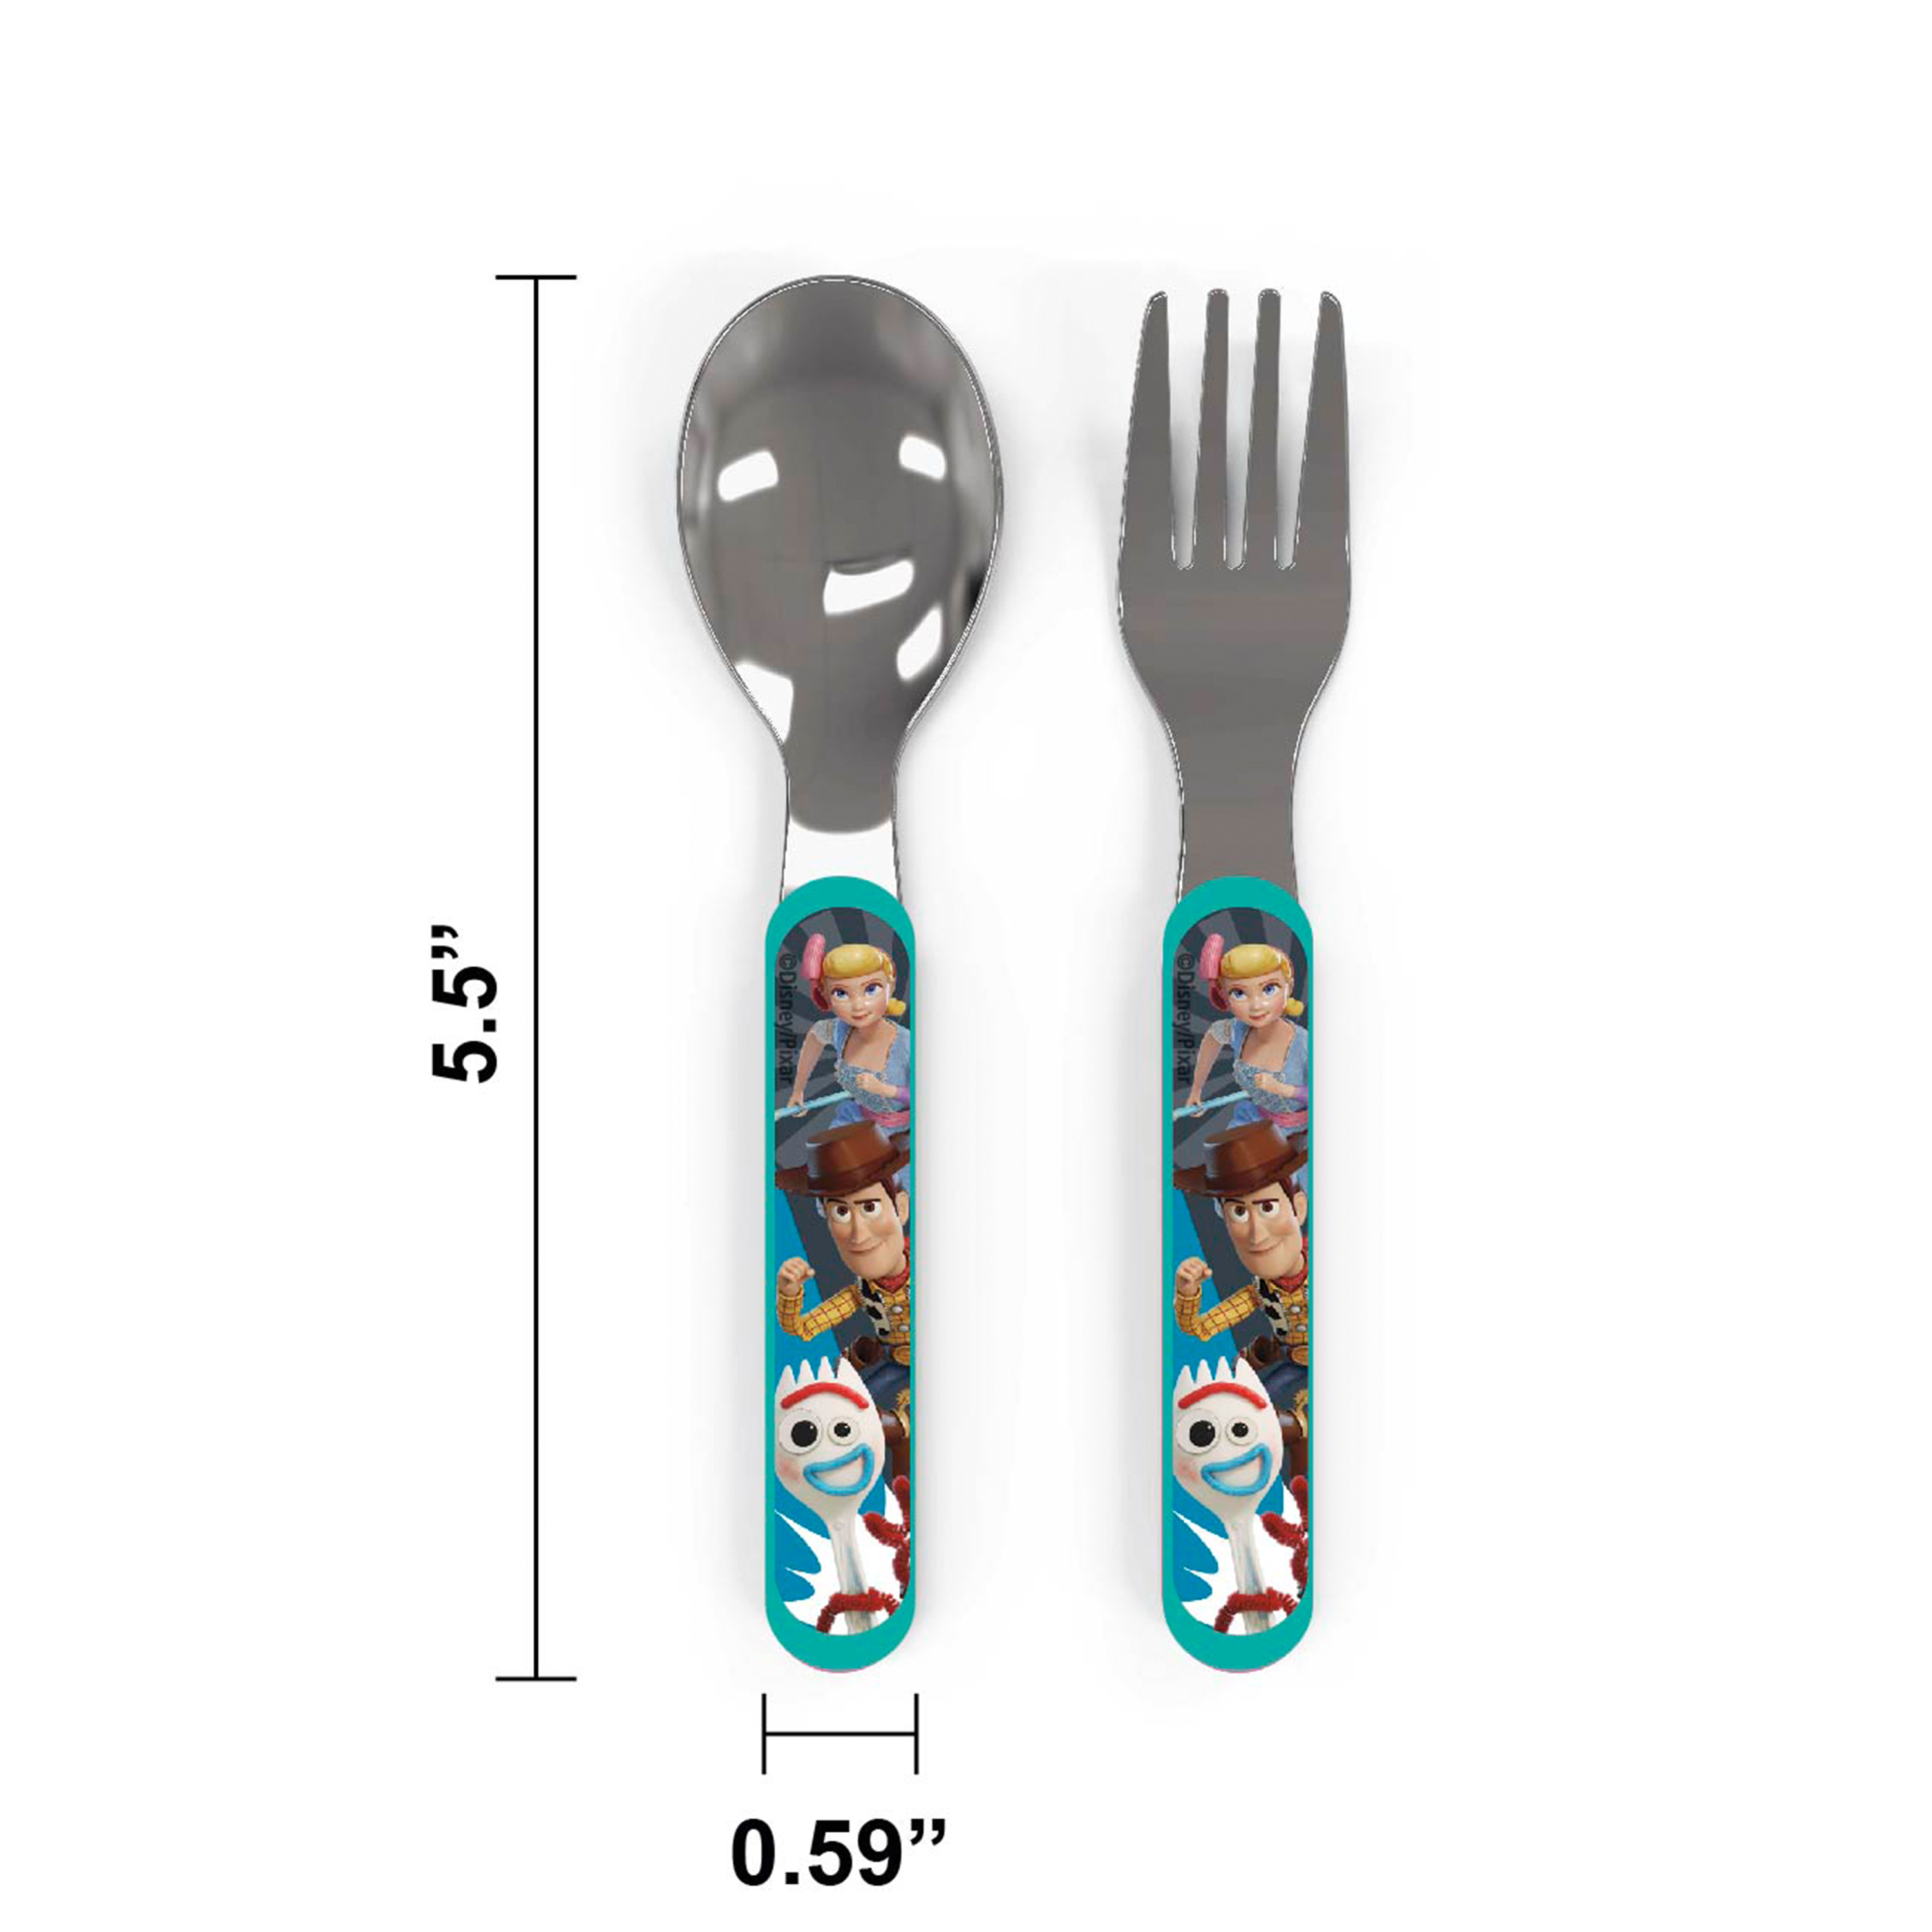 Disney Pixar Dinnerware Set, Woody, Buzz and Friends, 5-piece set slideshow image 4